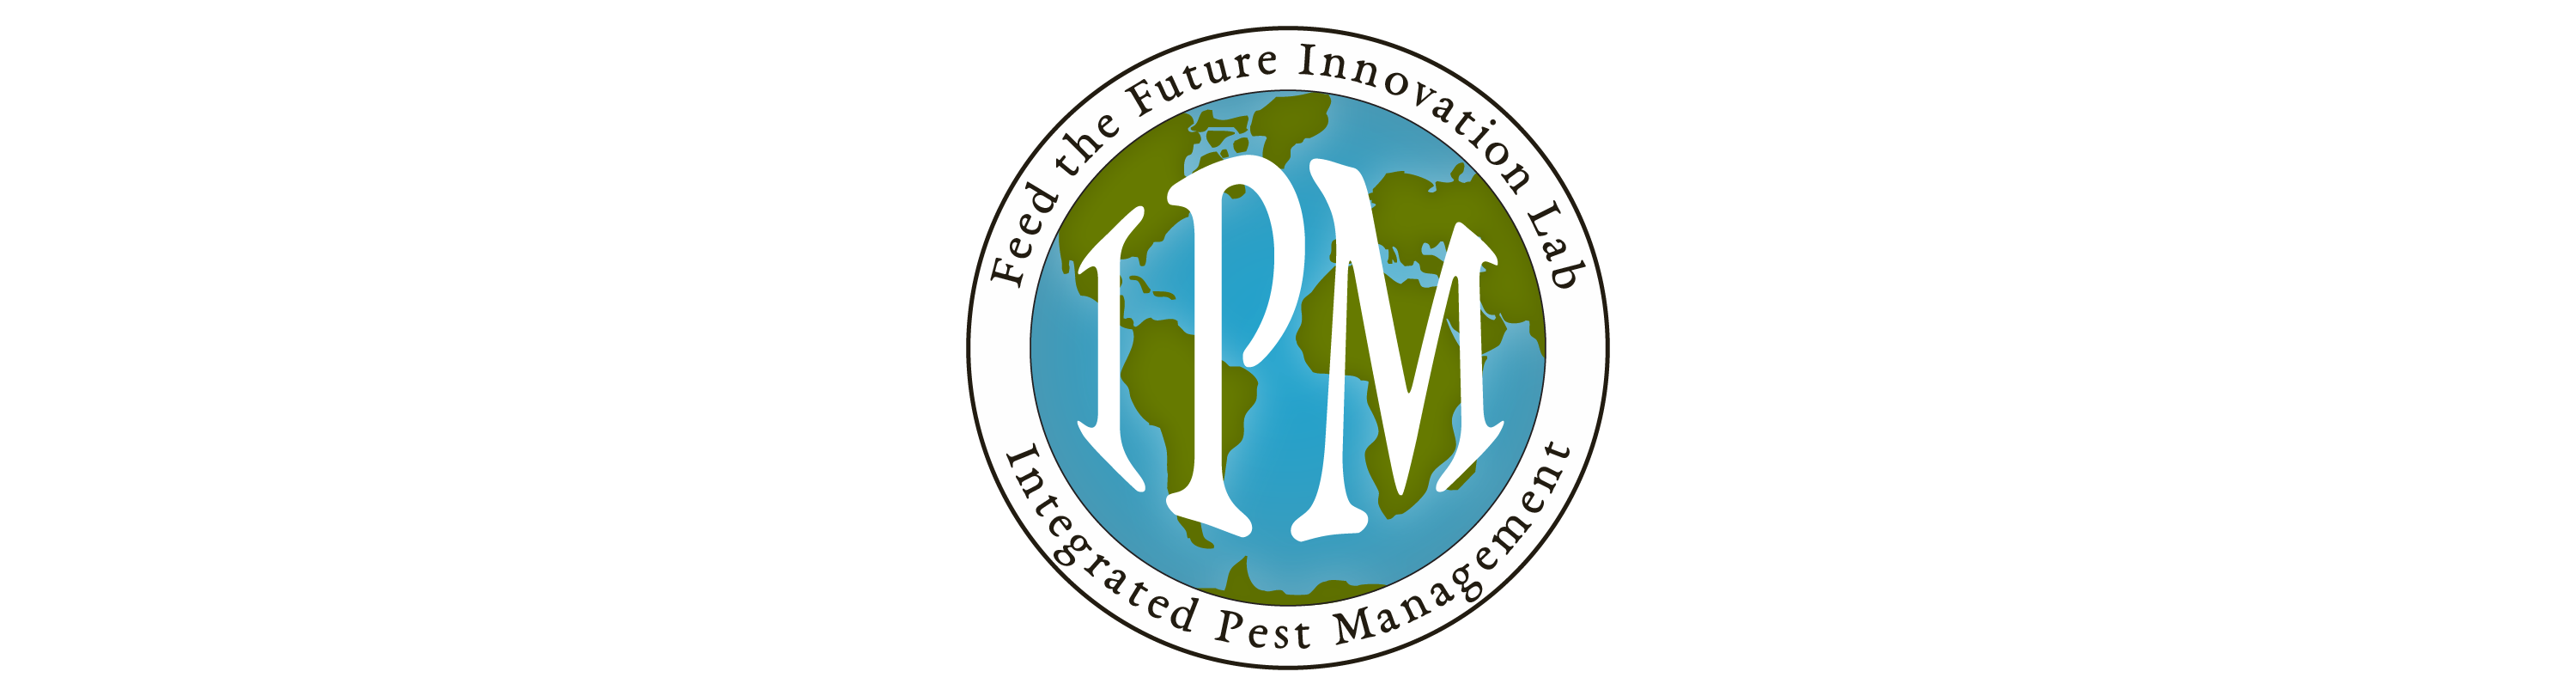 IPM Innovation Lab logo